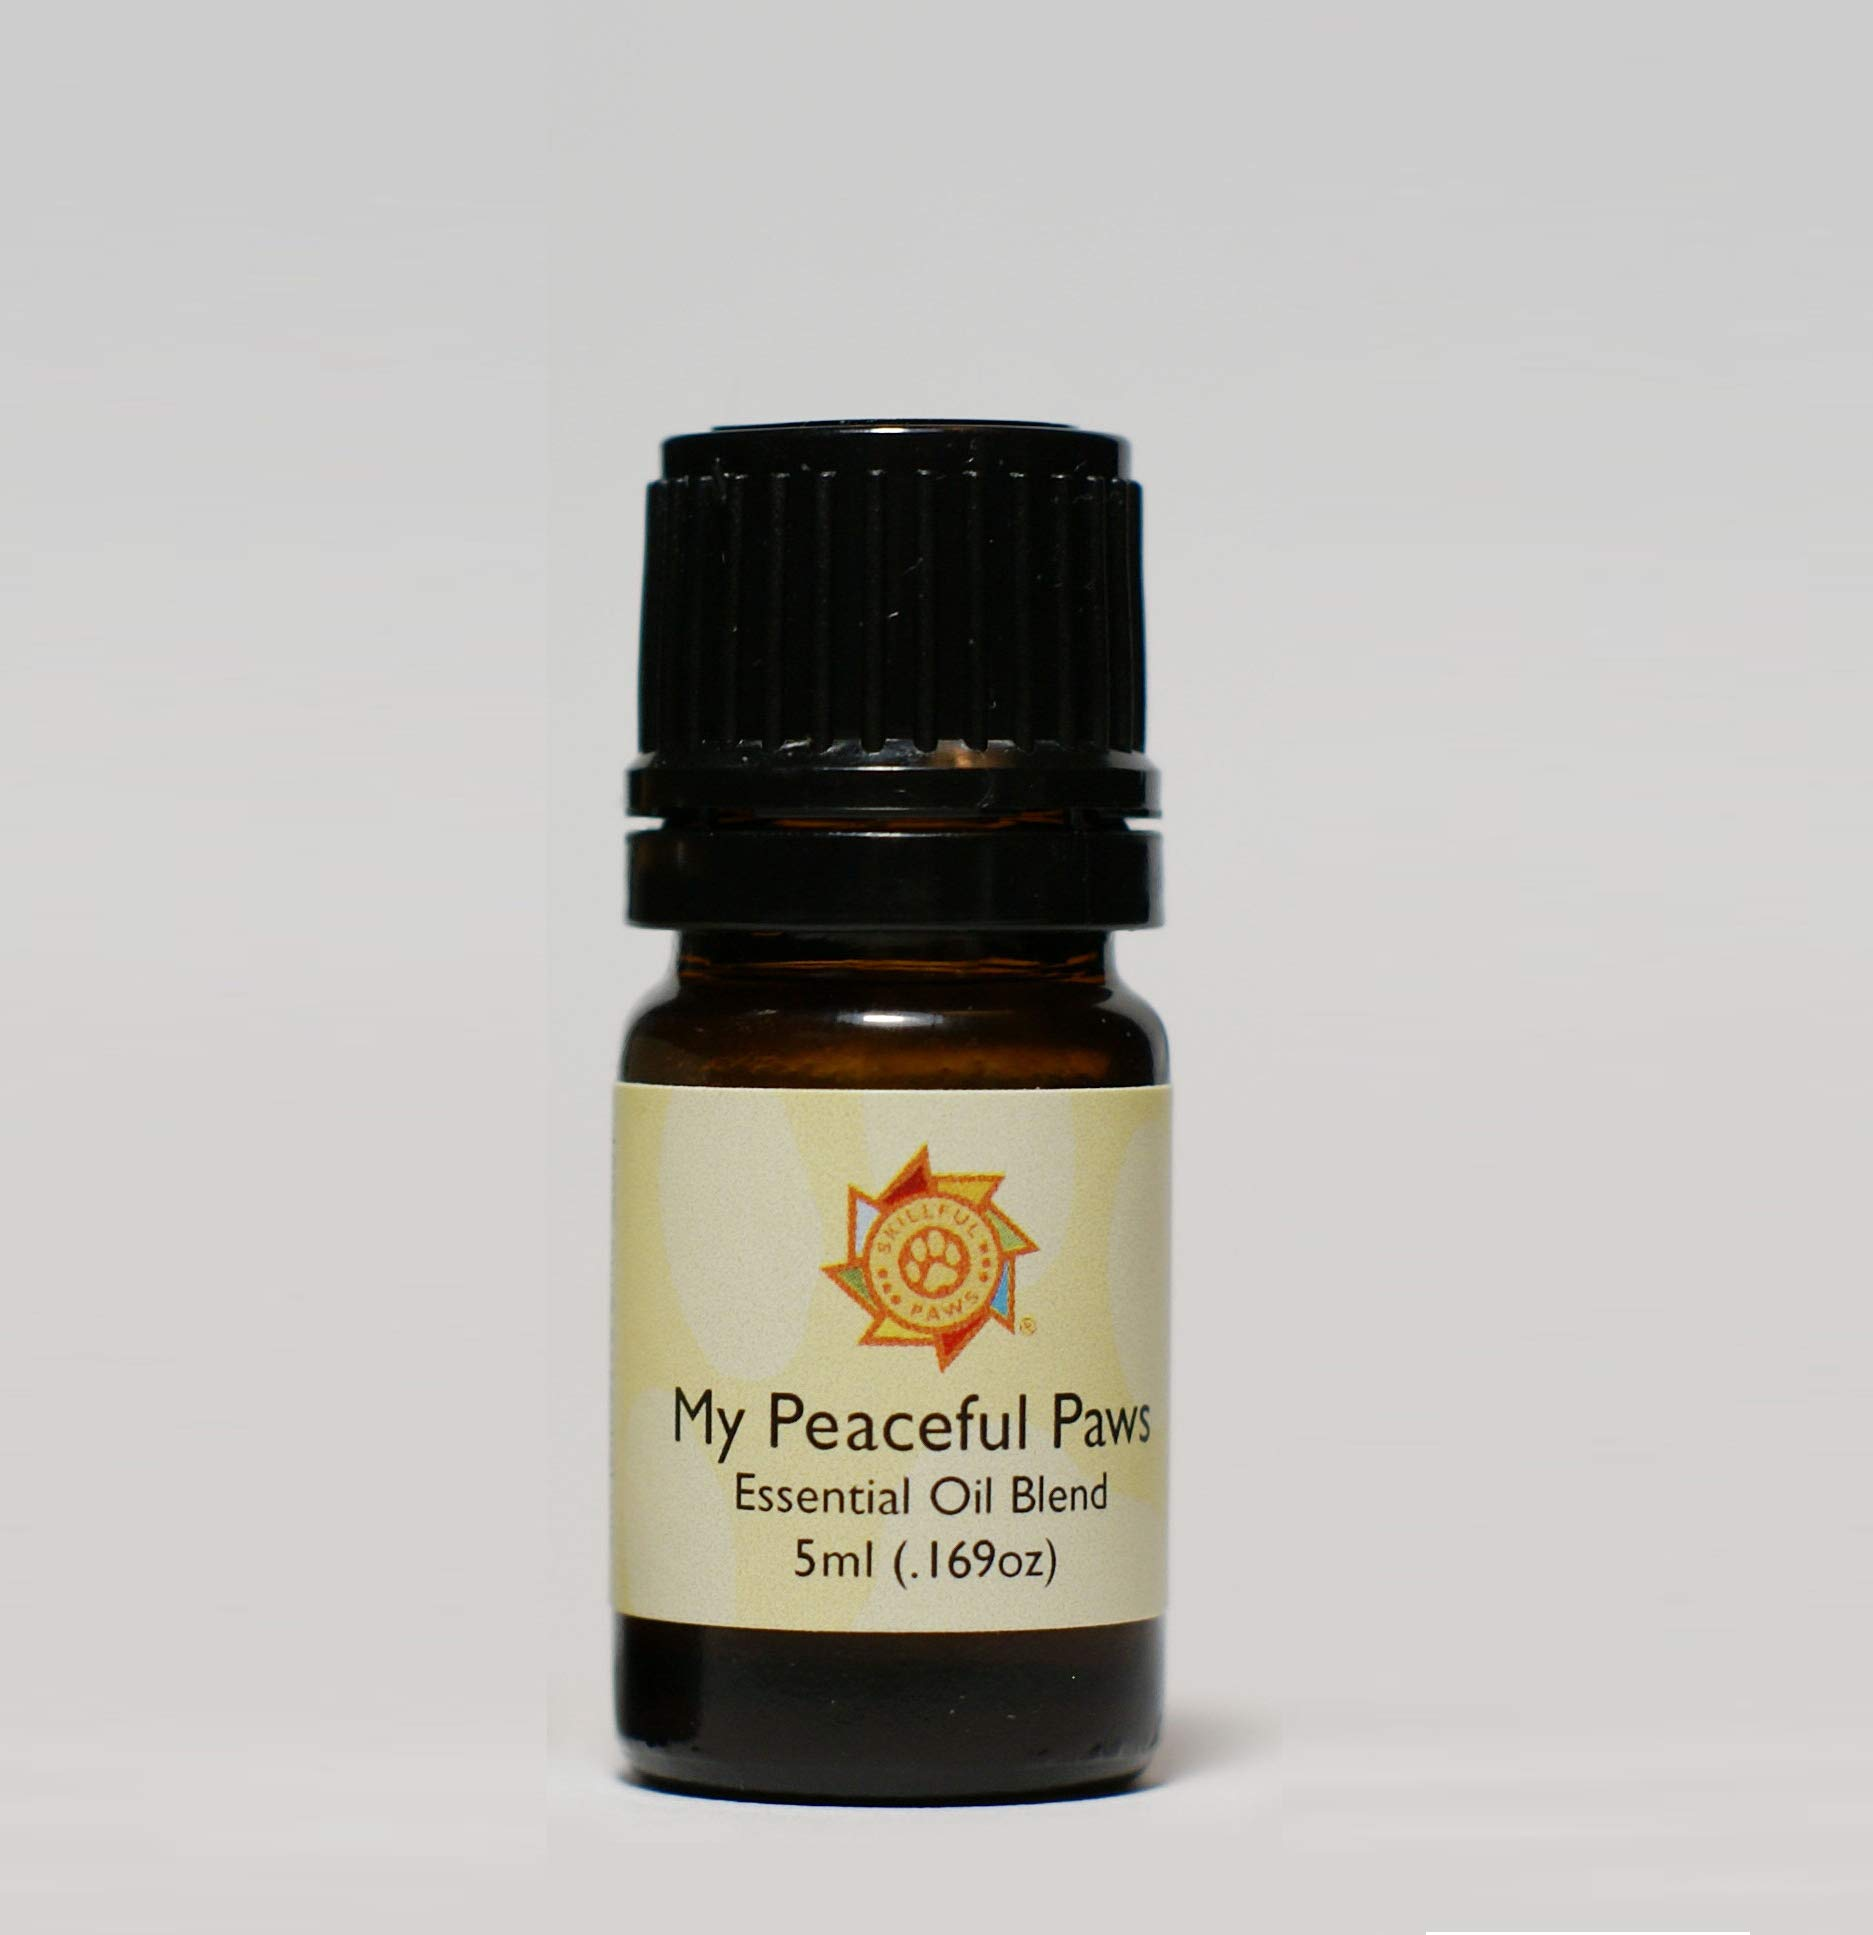 My Peaceful Paws (5ml /.169oz) -Essential Oil - Aromatherapy Calming Blend for Dogs. Topical Application for Separation Anxiety, Fear of Storms, Fireworks, and Stress in Daily Life